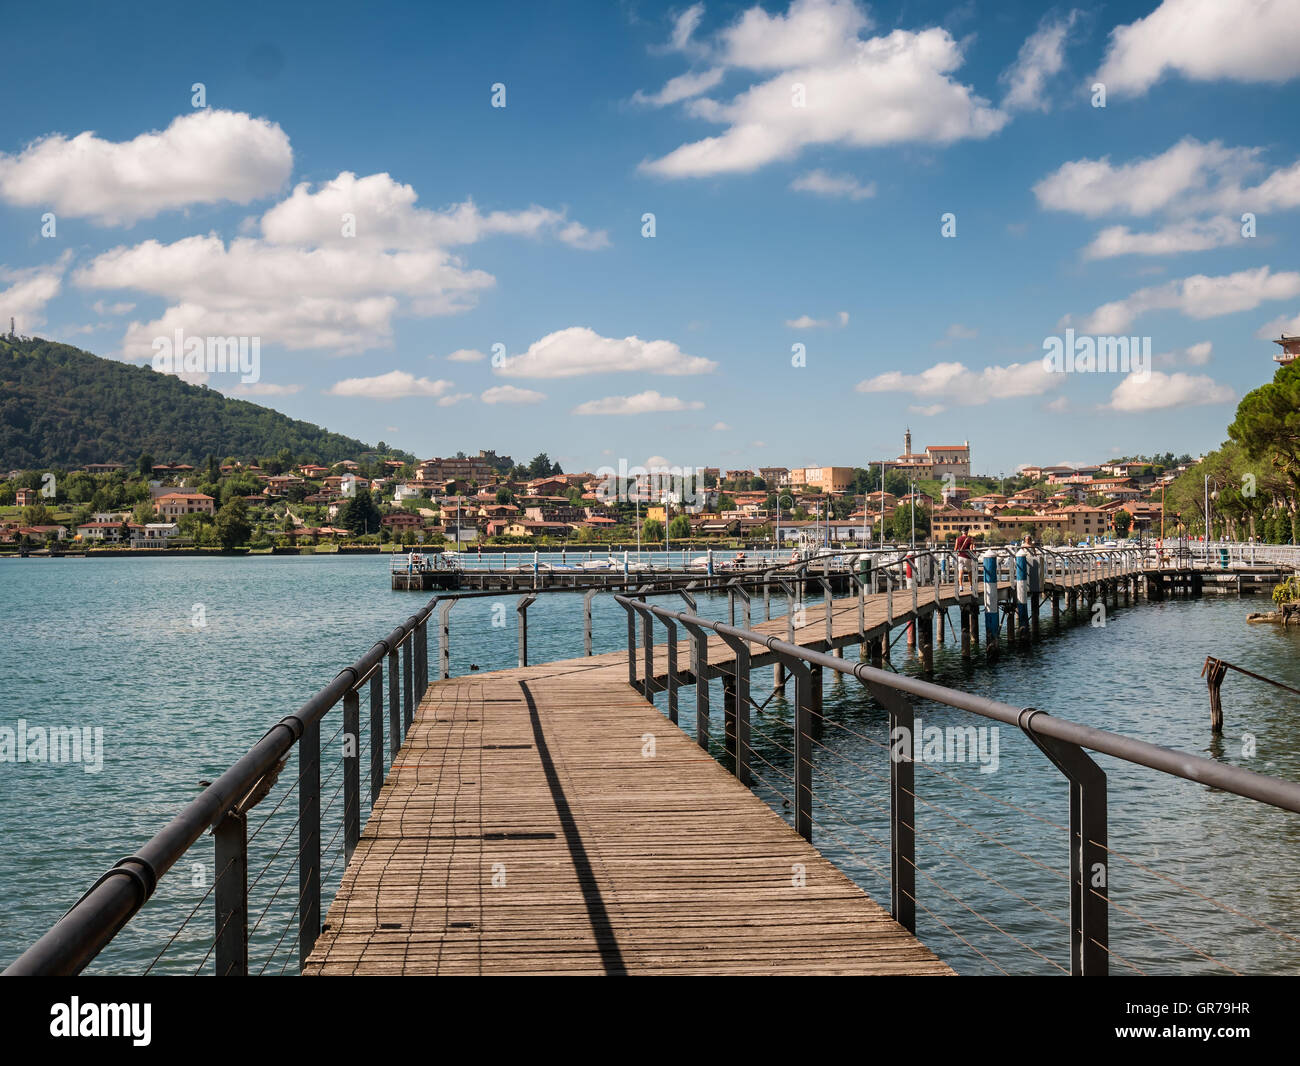 Sarnico village at the lakeside of lake Iseo in Italy Stock Photo